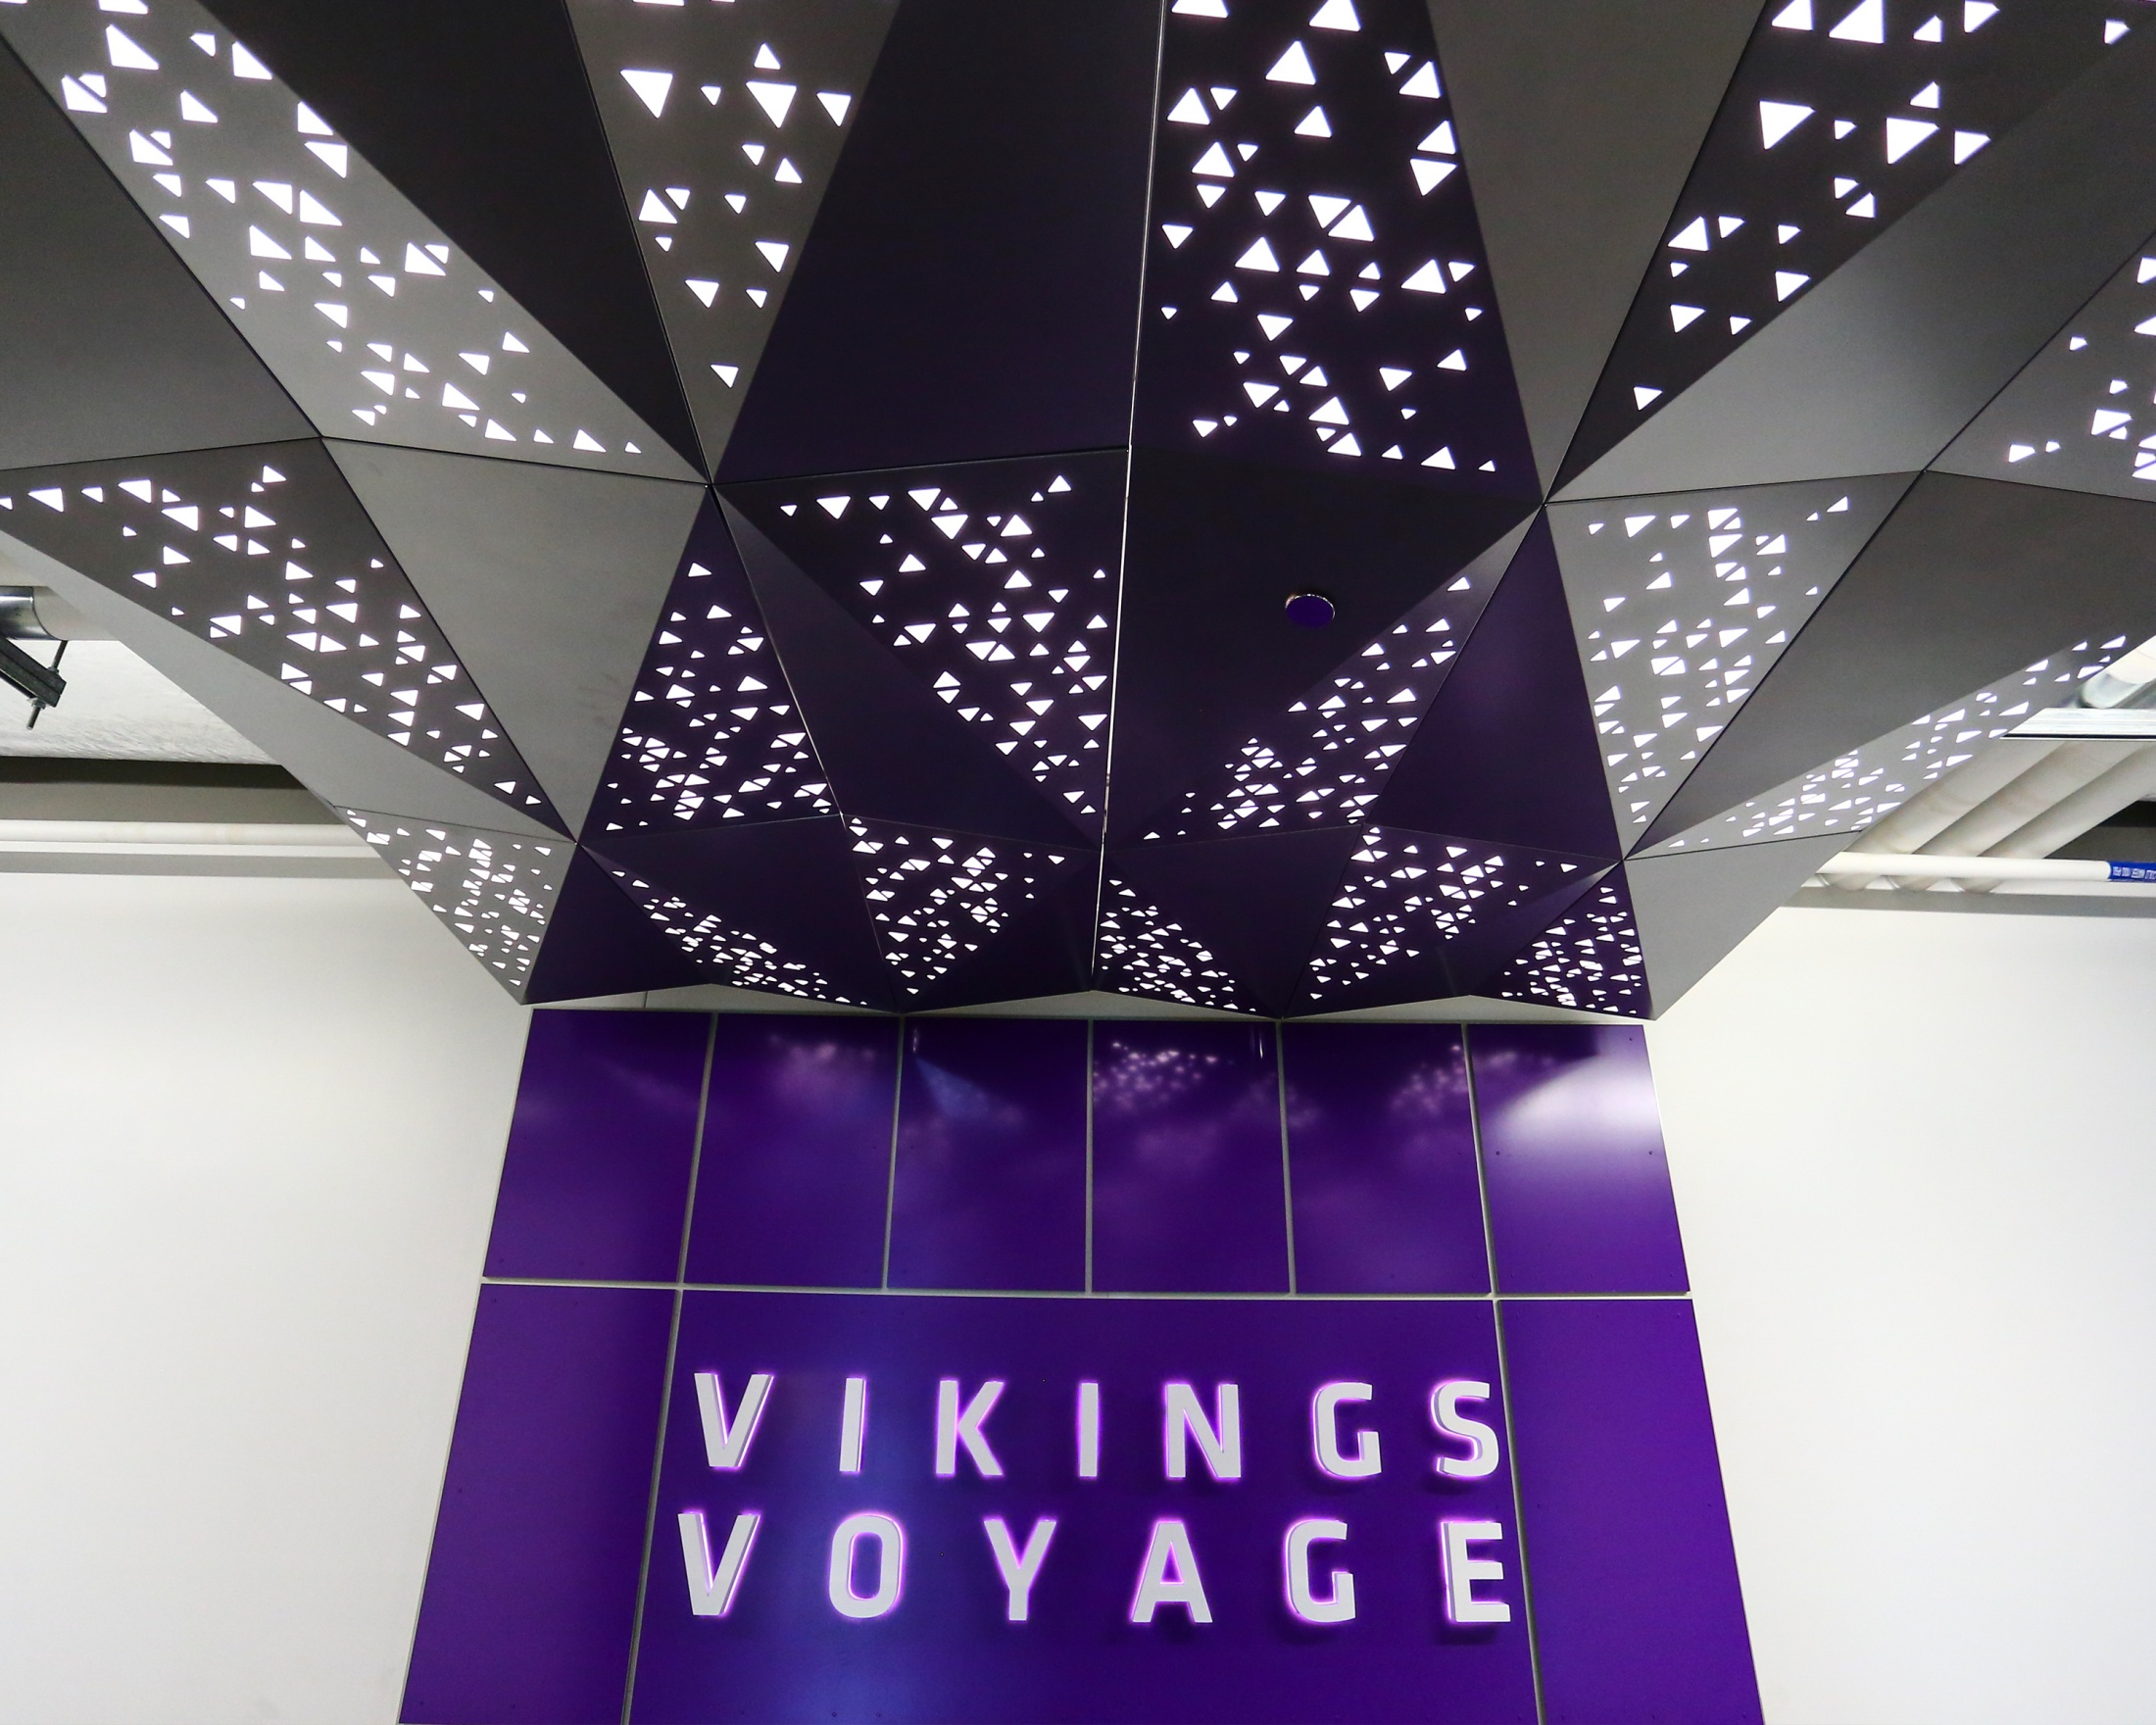 Thumbnail for Vikings Voyage